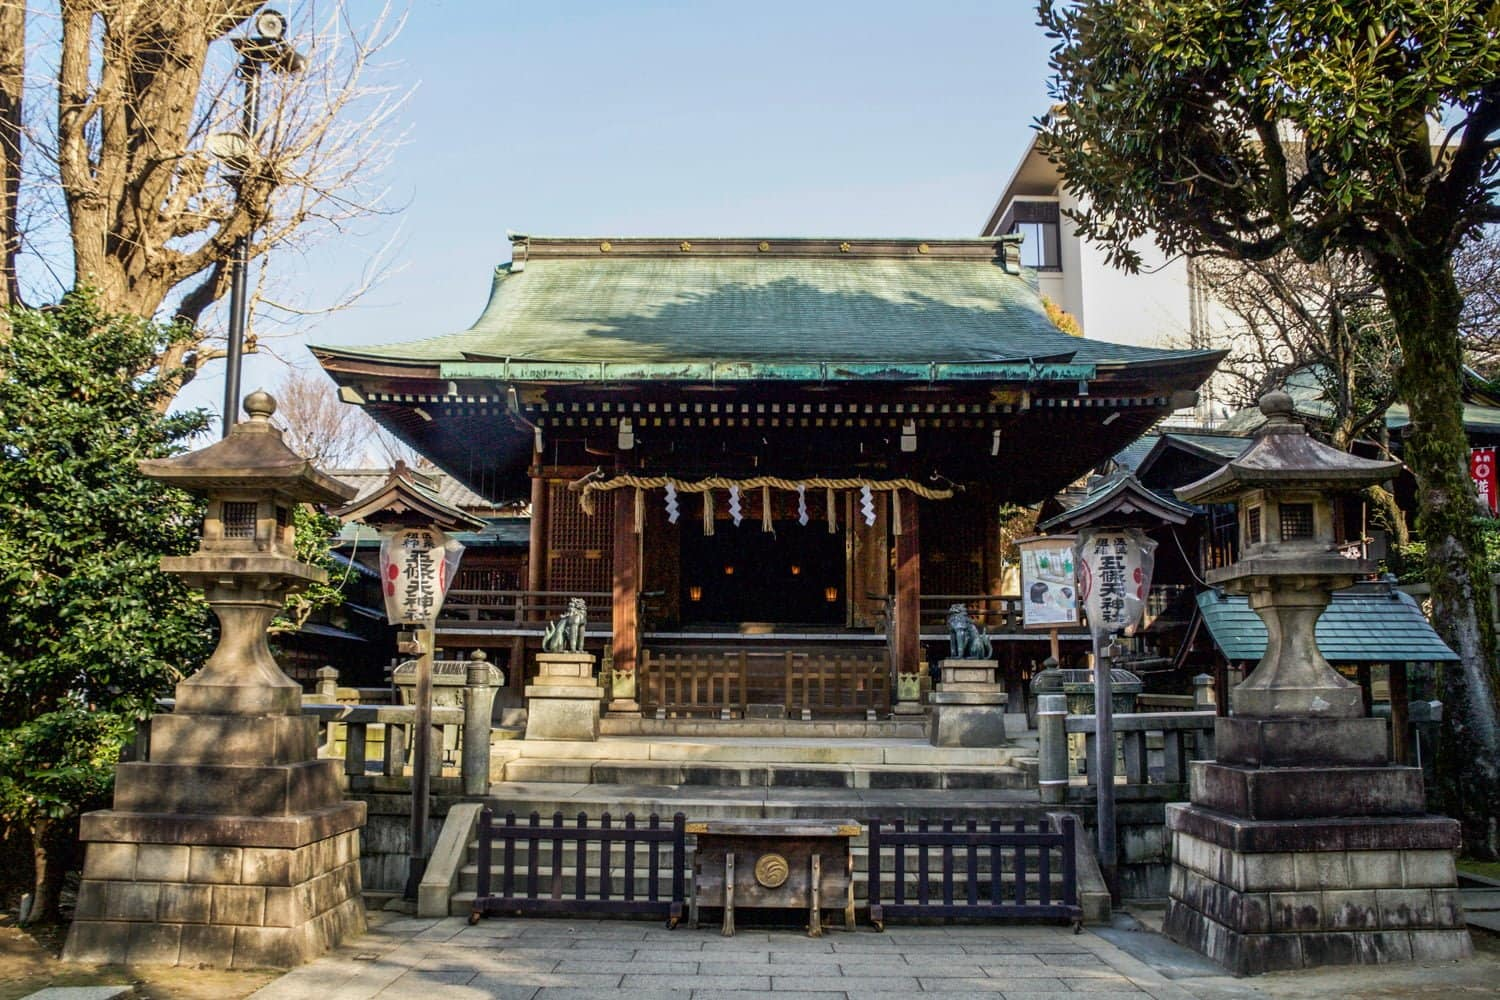 If you only have two days in Tokyo, it's important to use your time wisely. From authentic shrines to anime-filled streets, there's so much to see! Read more at thefivefoottraveler.com